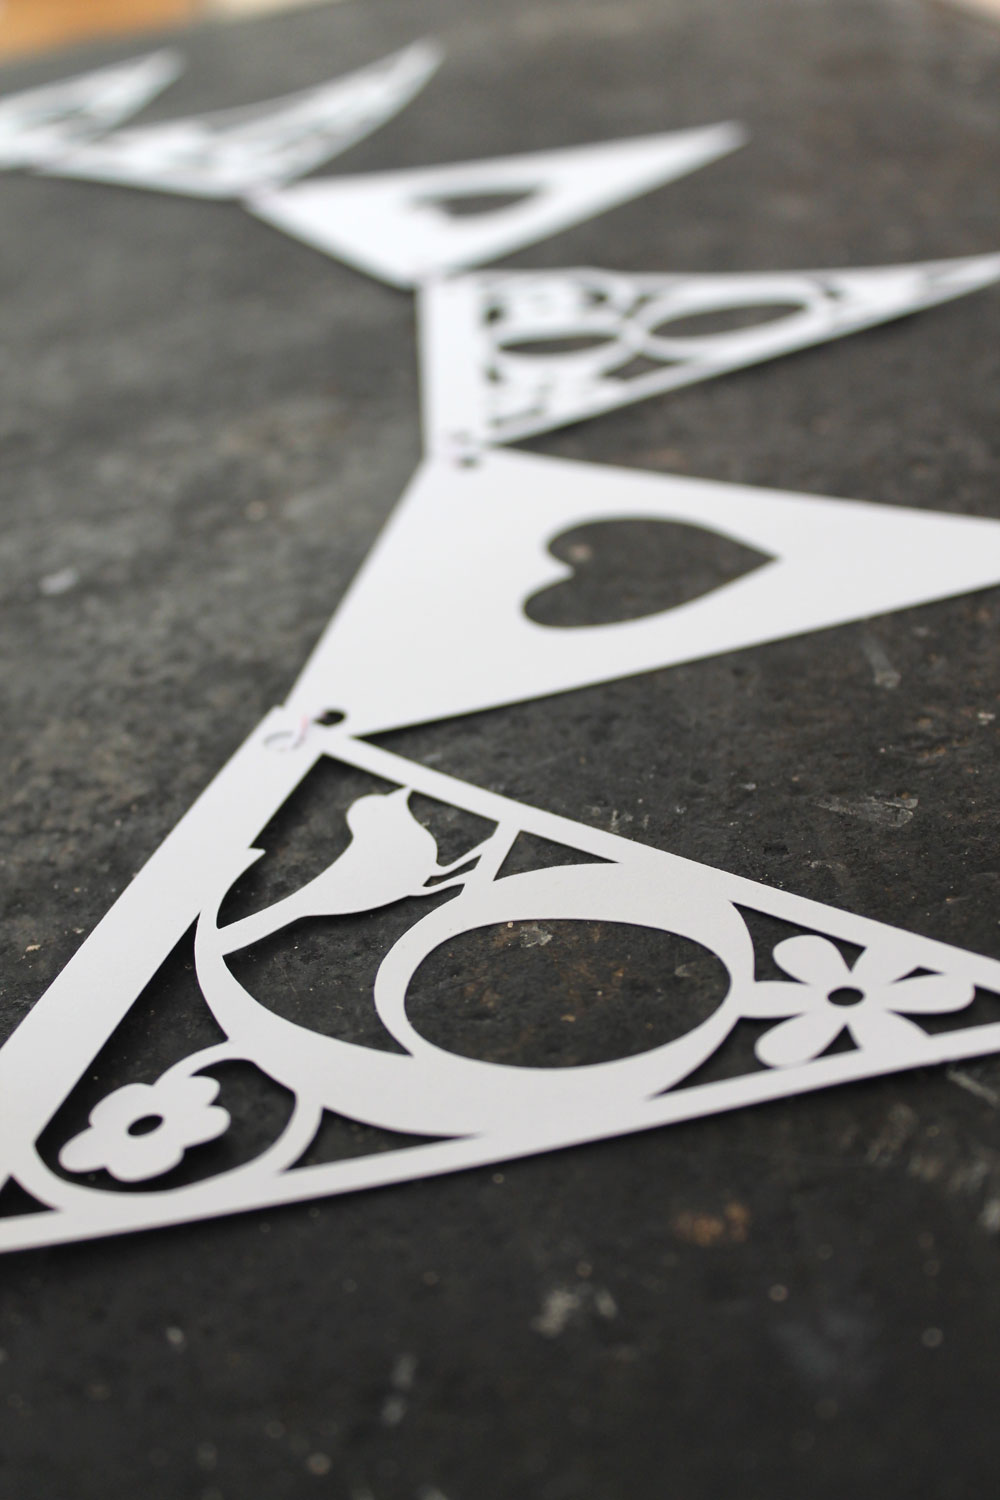 Memorable date papercut bunting from Studio Seed